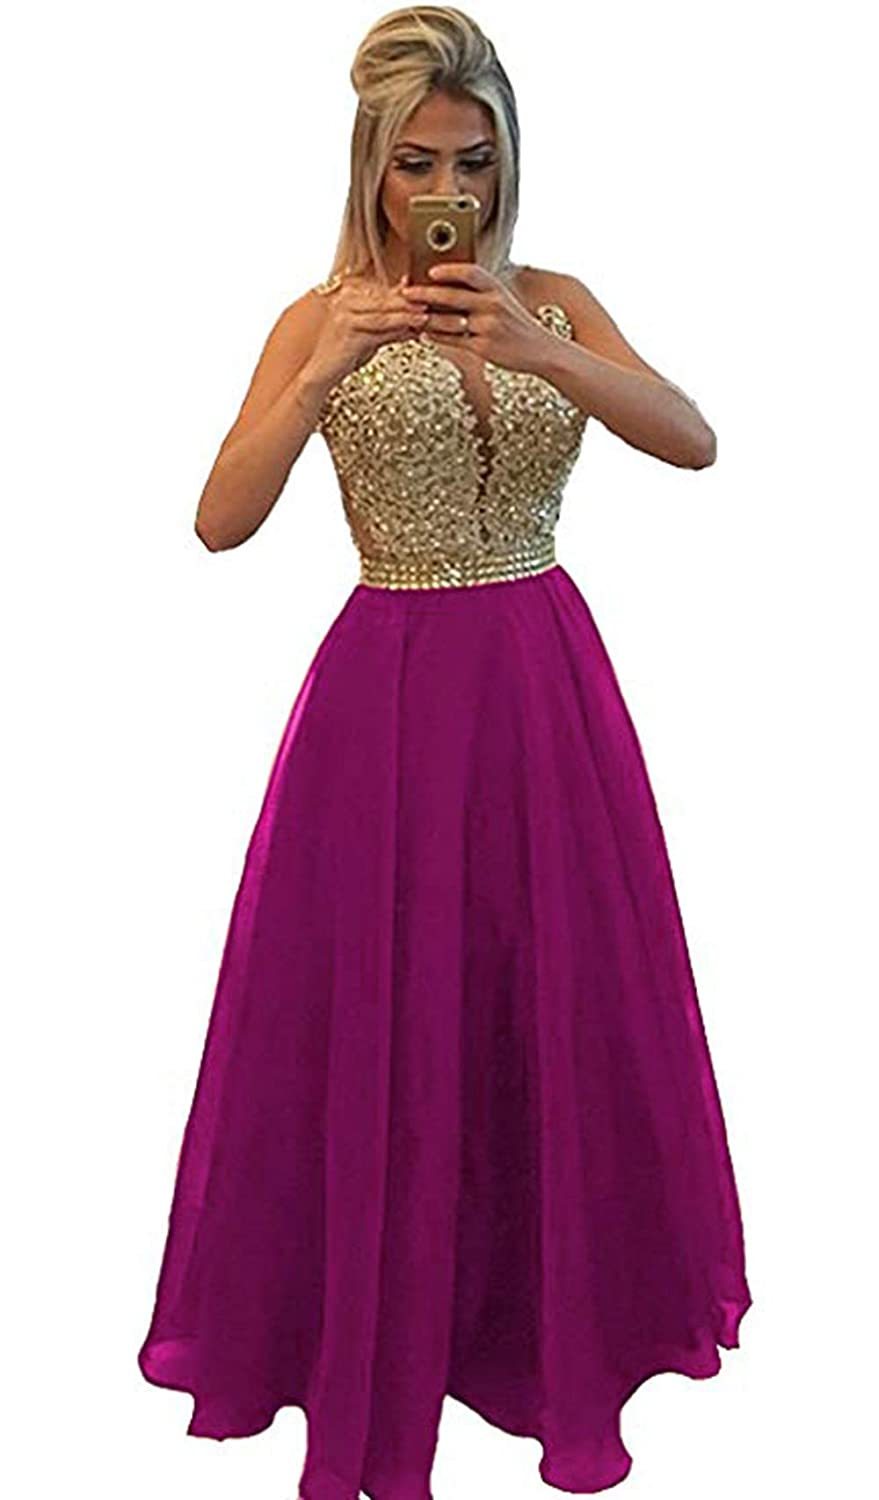 Cfuchsia Ri Yun Womens Prom Dresses Long Sleeve Lace 2018 Illusions Back Pearl VNeck Formal Evening Ball Gowns